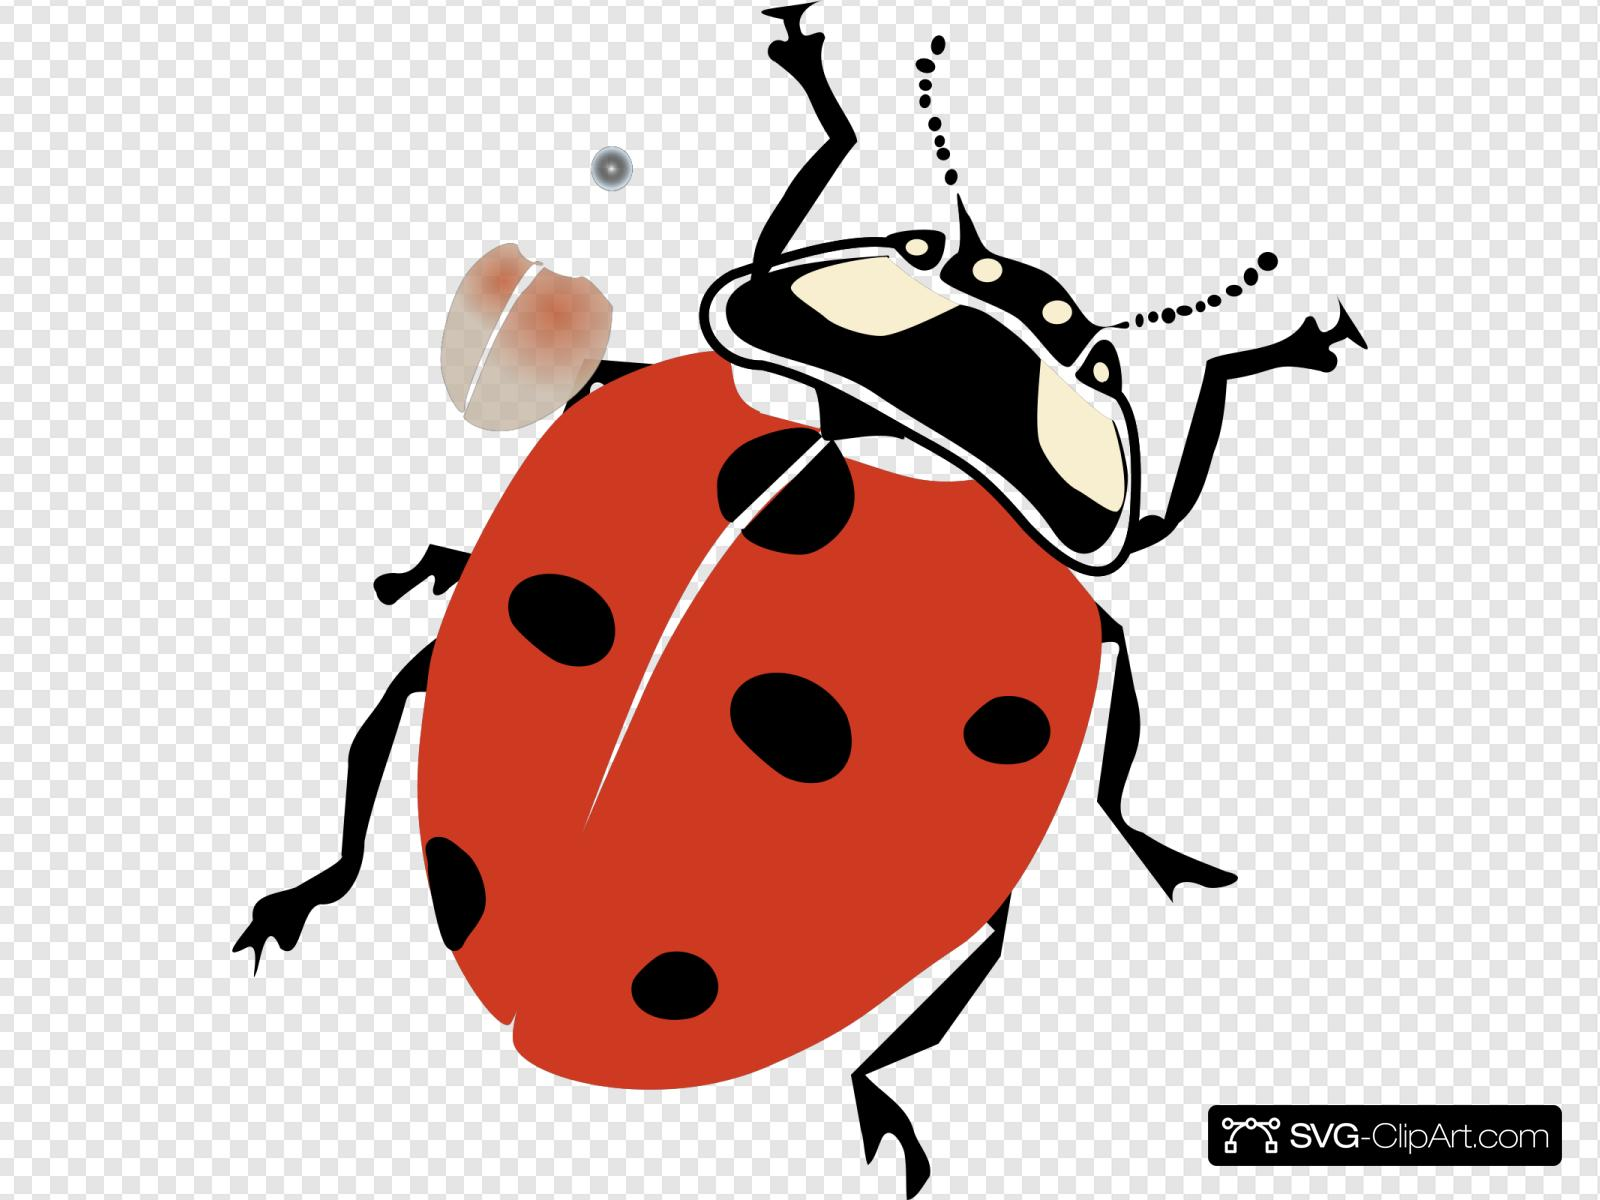 - Ladybug Clip Art, Icon And SVG - SVG Clipart